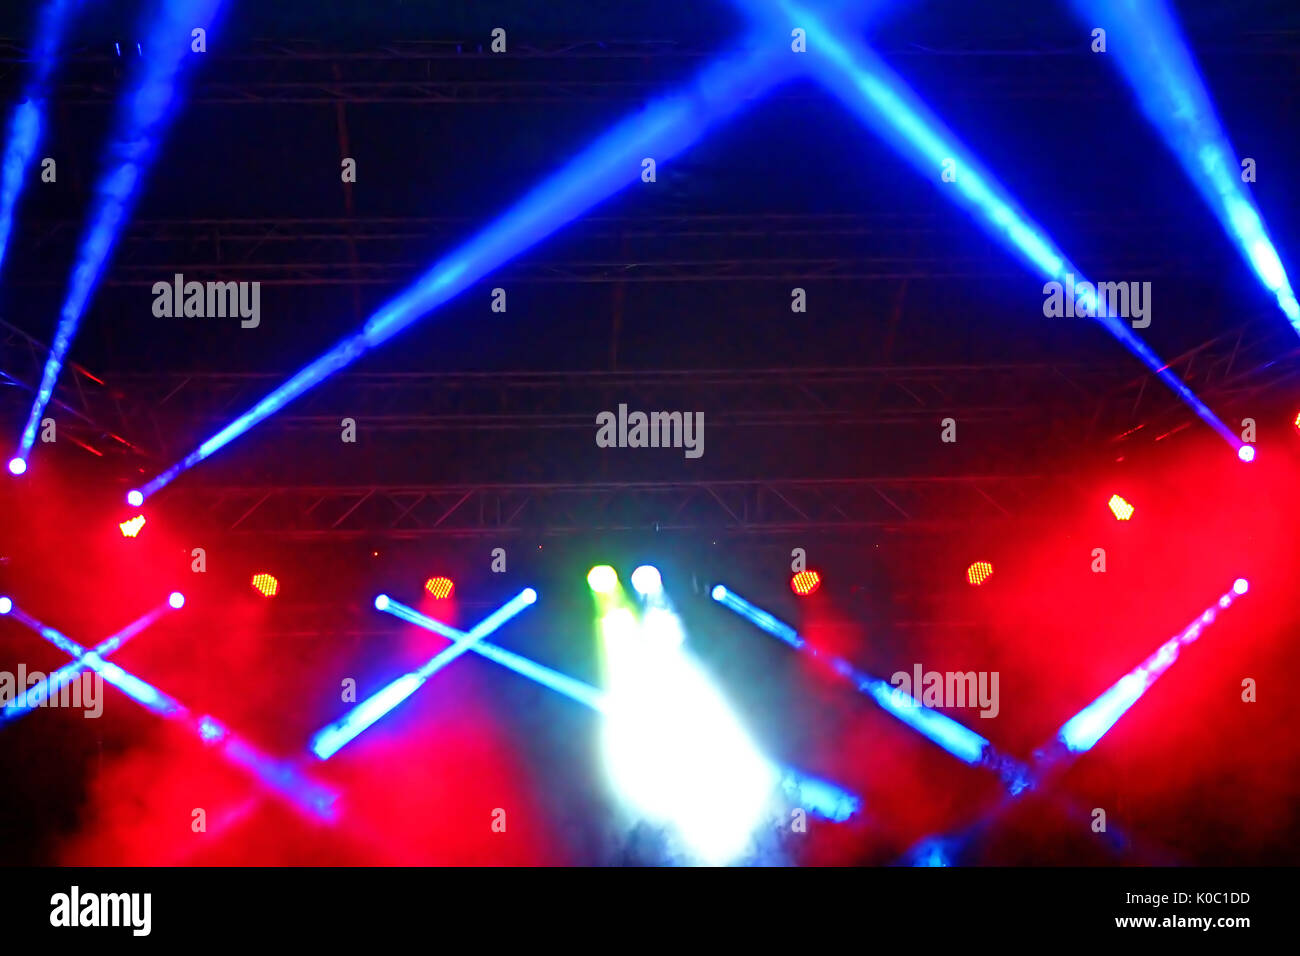 Stage Spotlight with rays. Concert lighting background Stock Photo ... for Concert Stage Lights Background  1lp1fsj